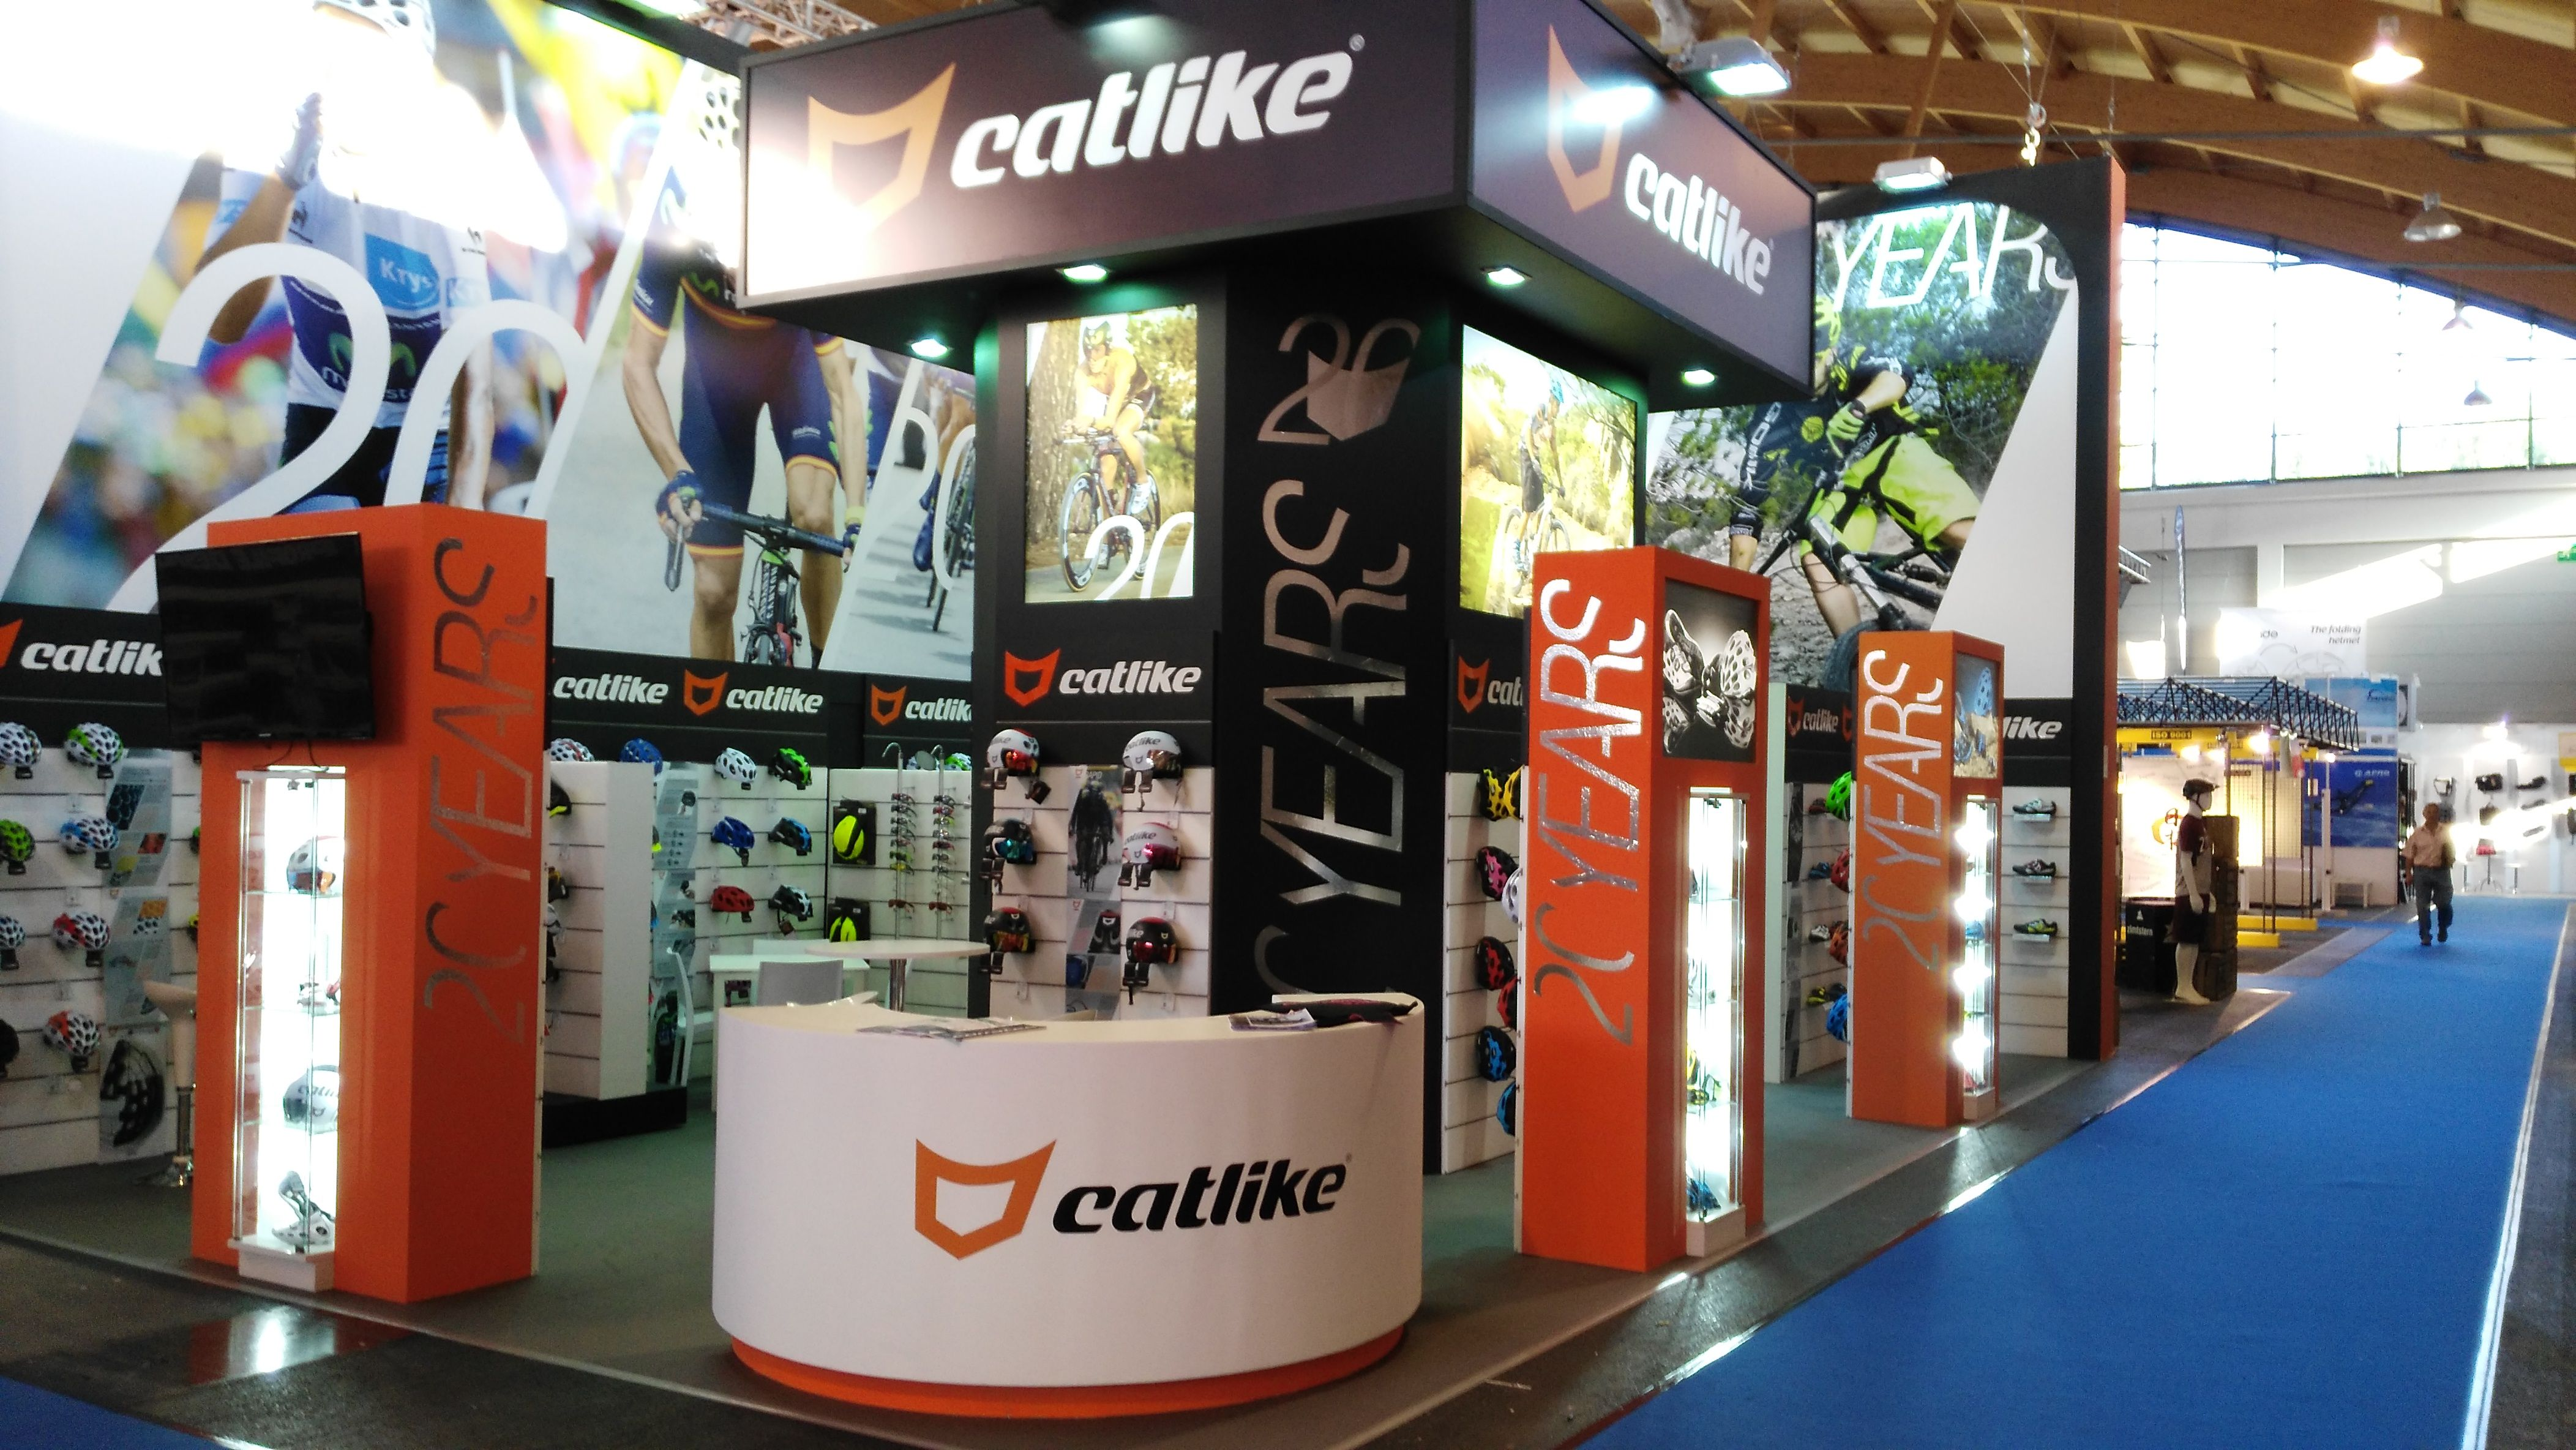 Trade Stands Hoys 2015 : Grupo alc developed three stand projects at eurobike